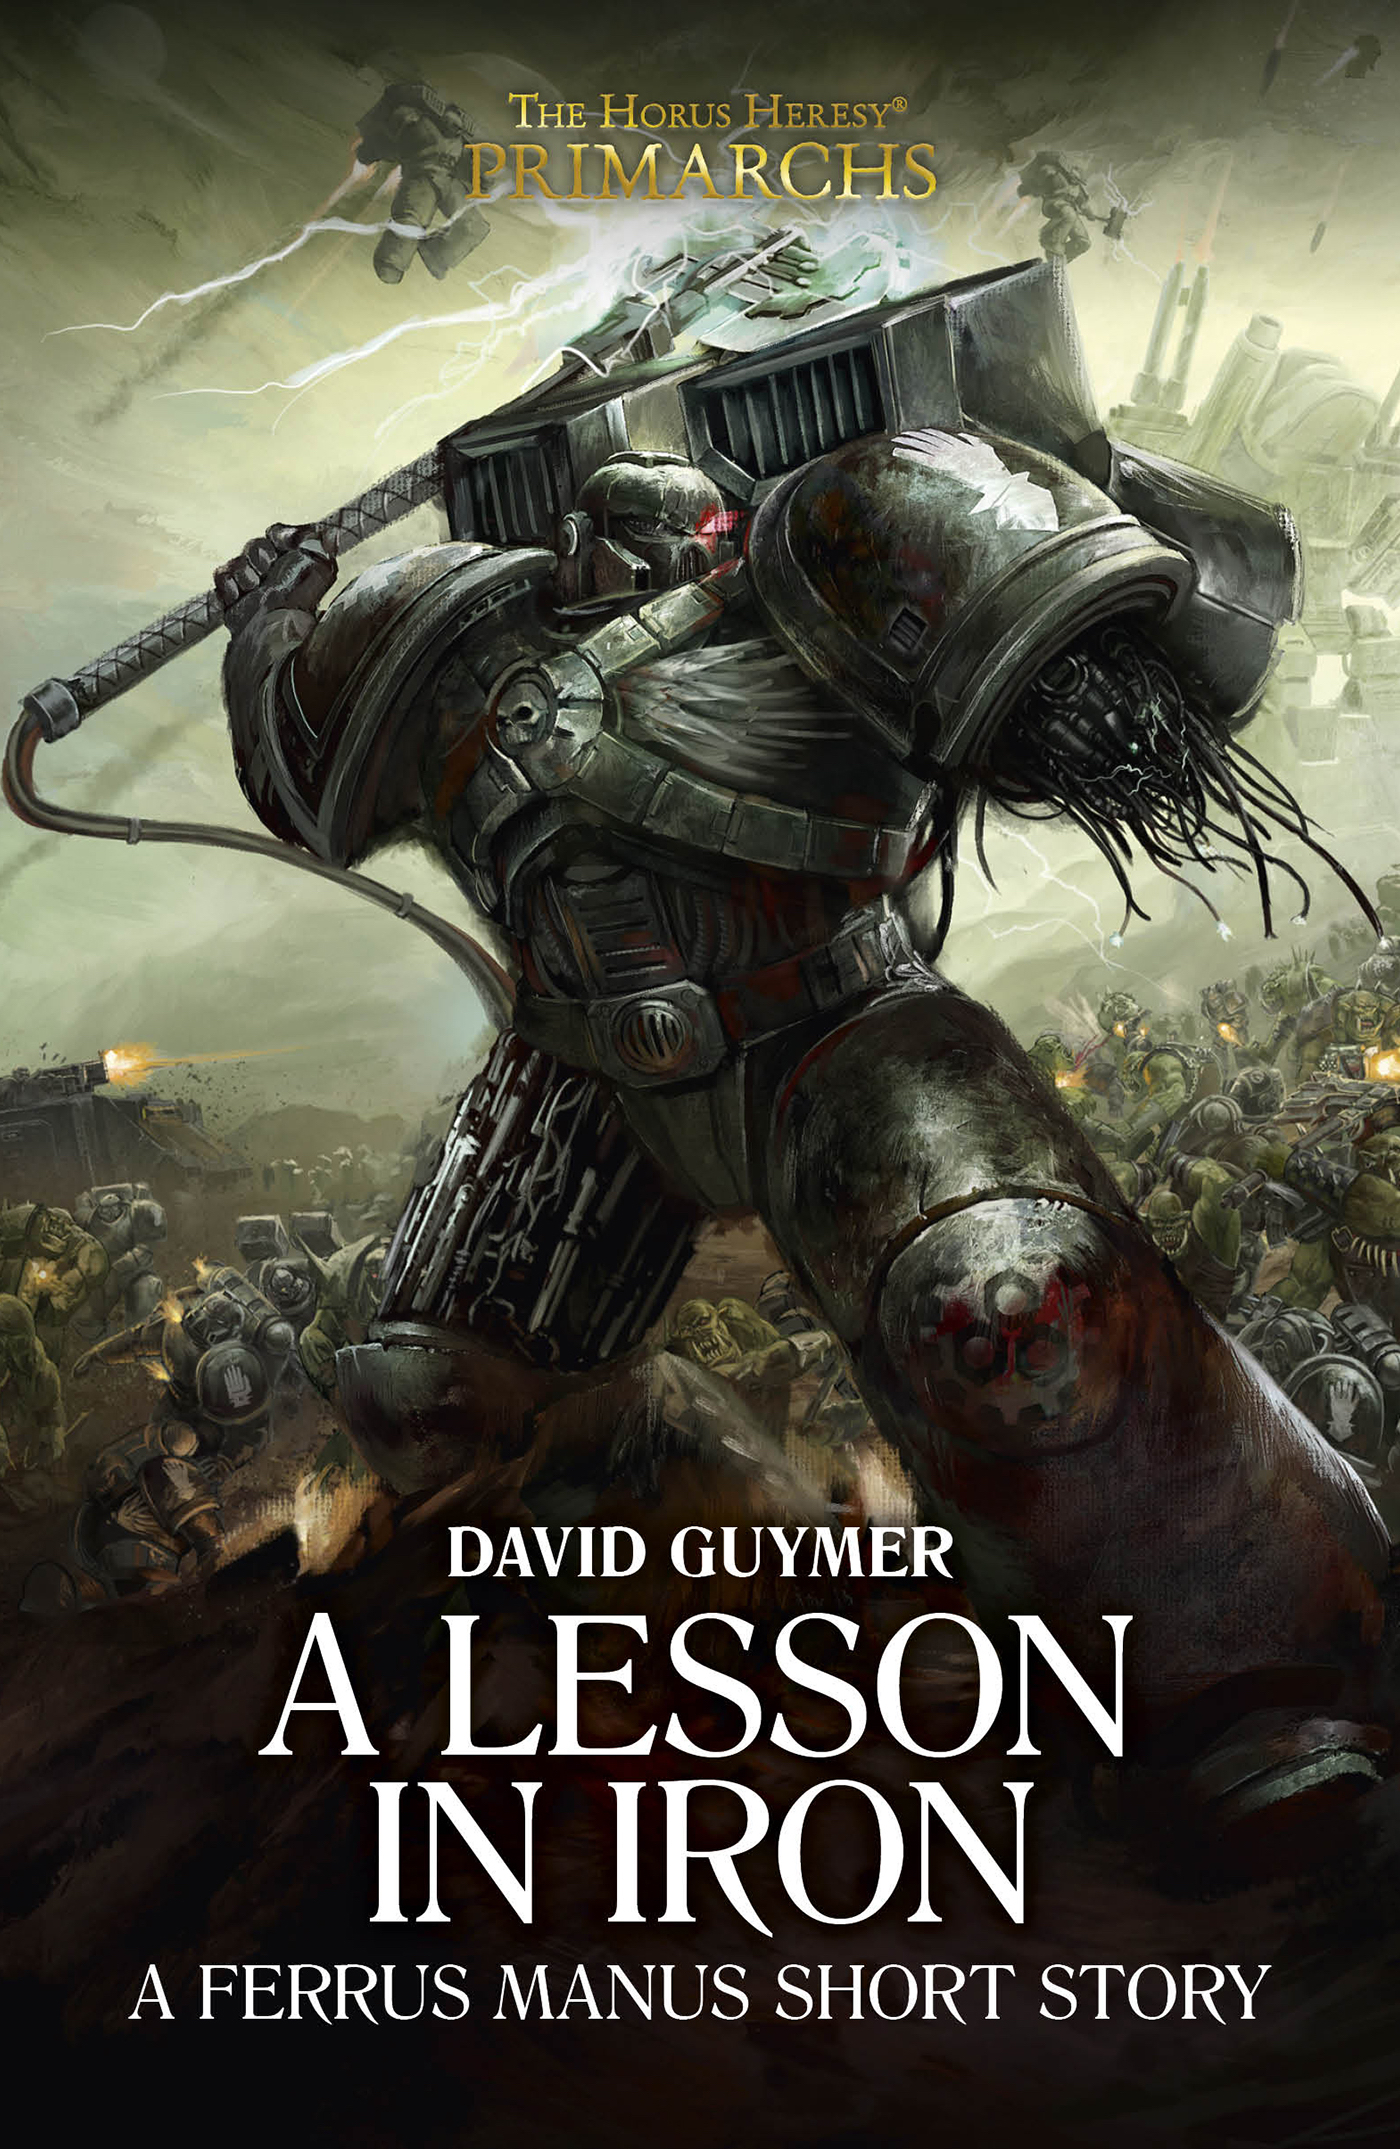 A Lesson in Iron by David Guymer